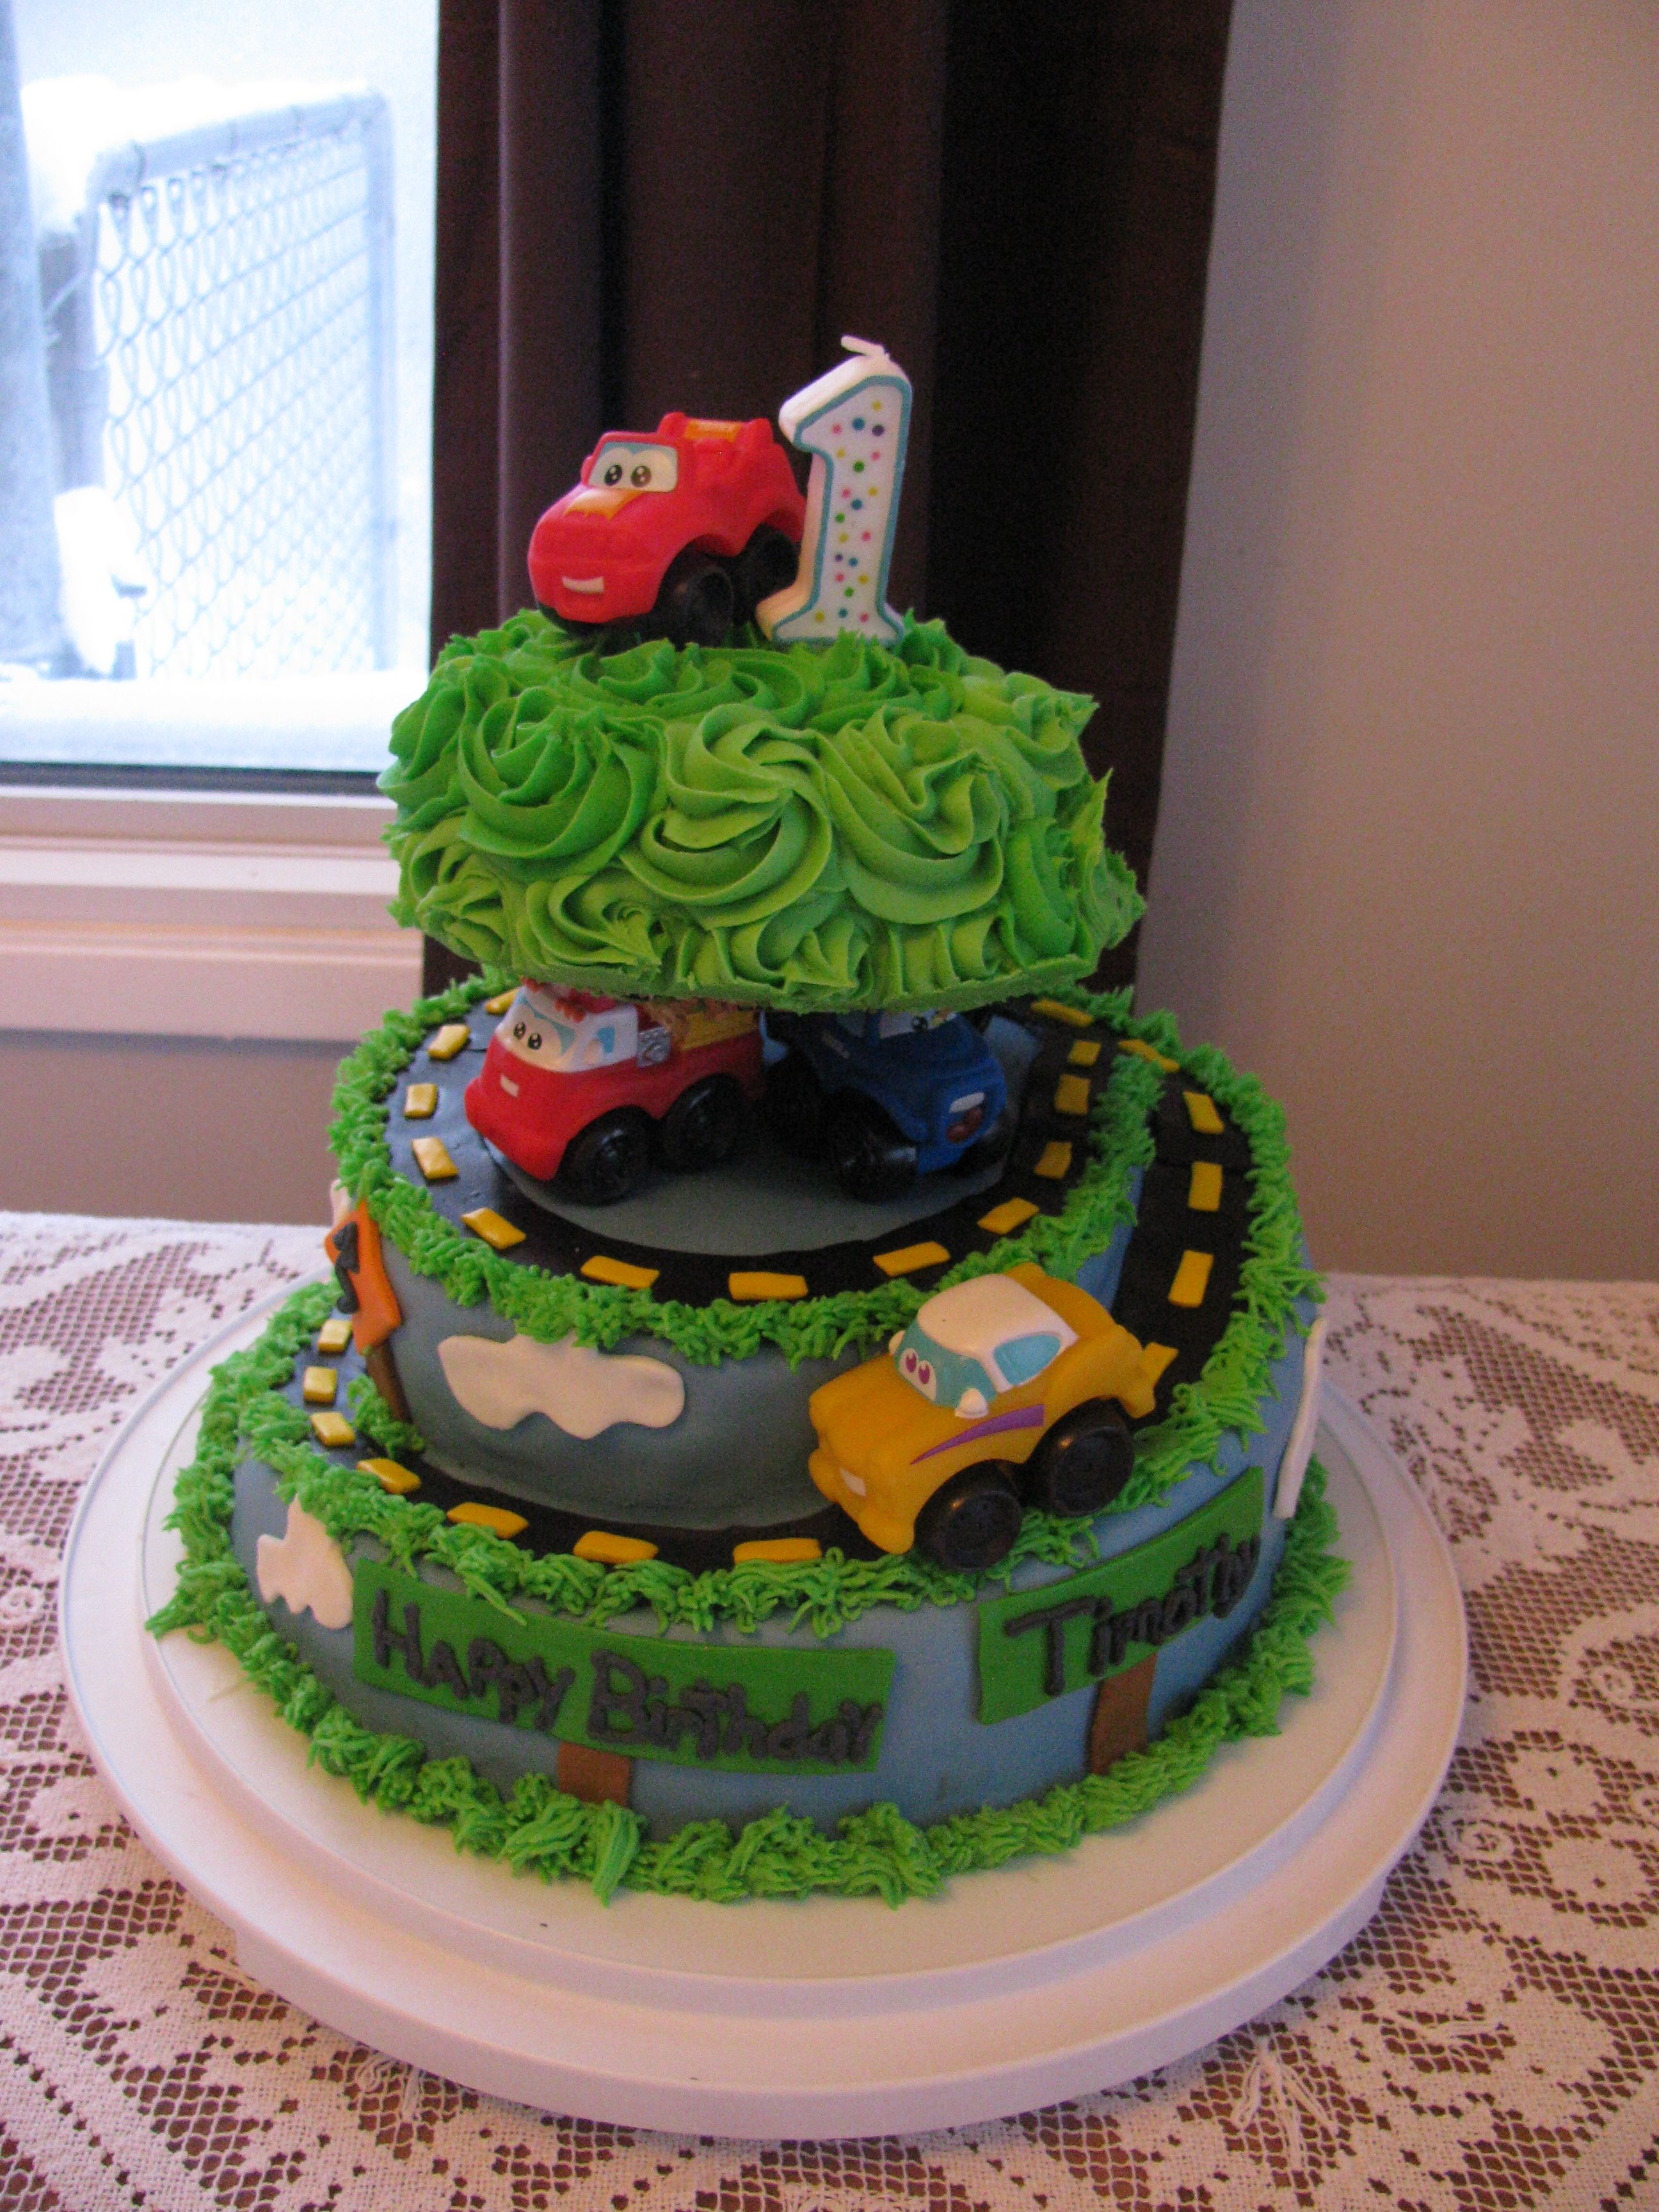 I made this cake for my son's first birthday. The top